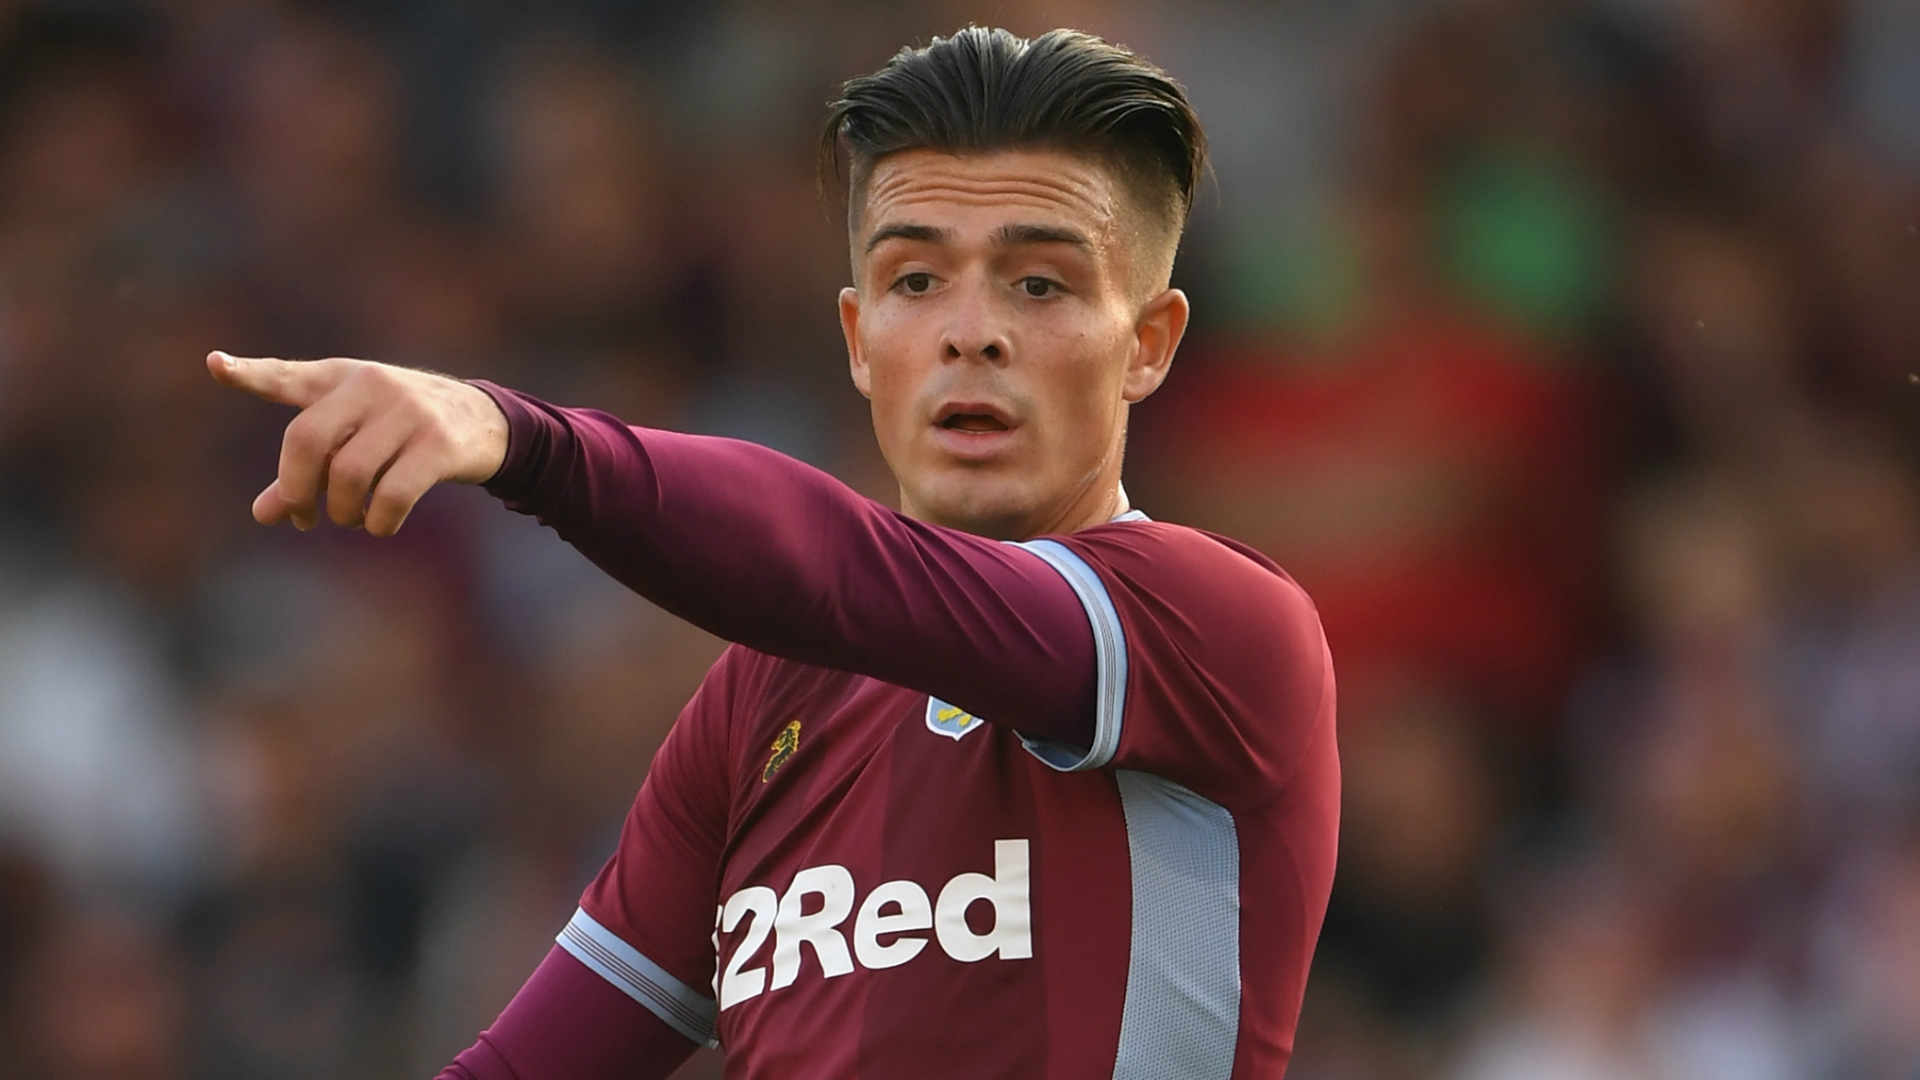 Tottenham way off in valuation of Aston Villa's Jack Grealish - Steve Bruce